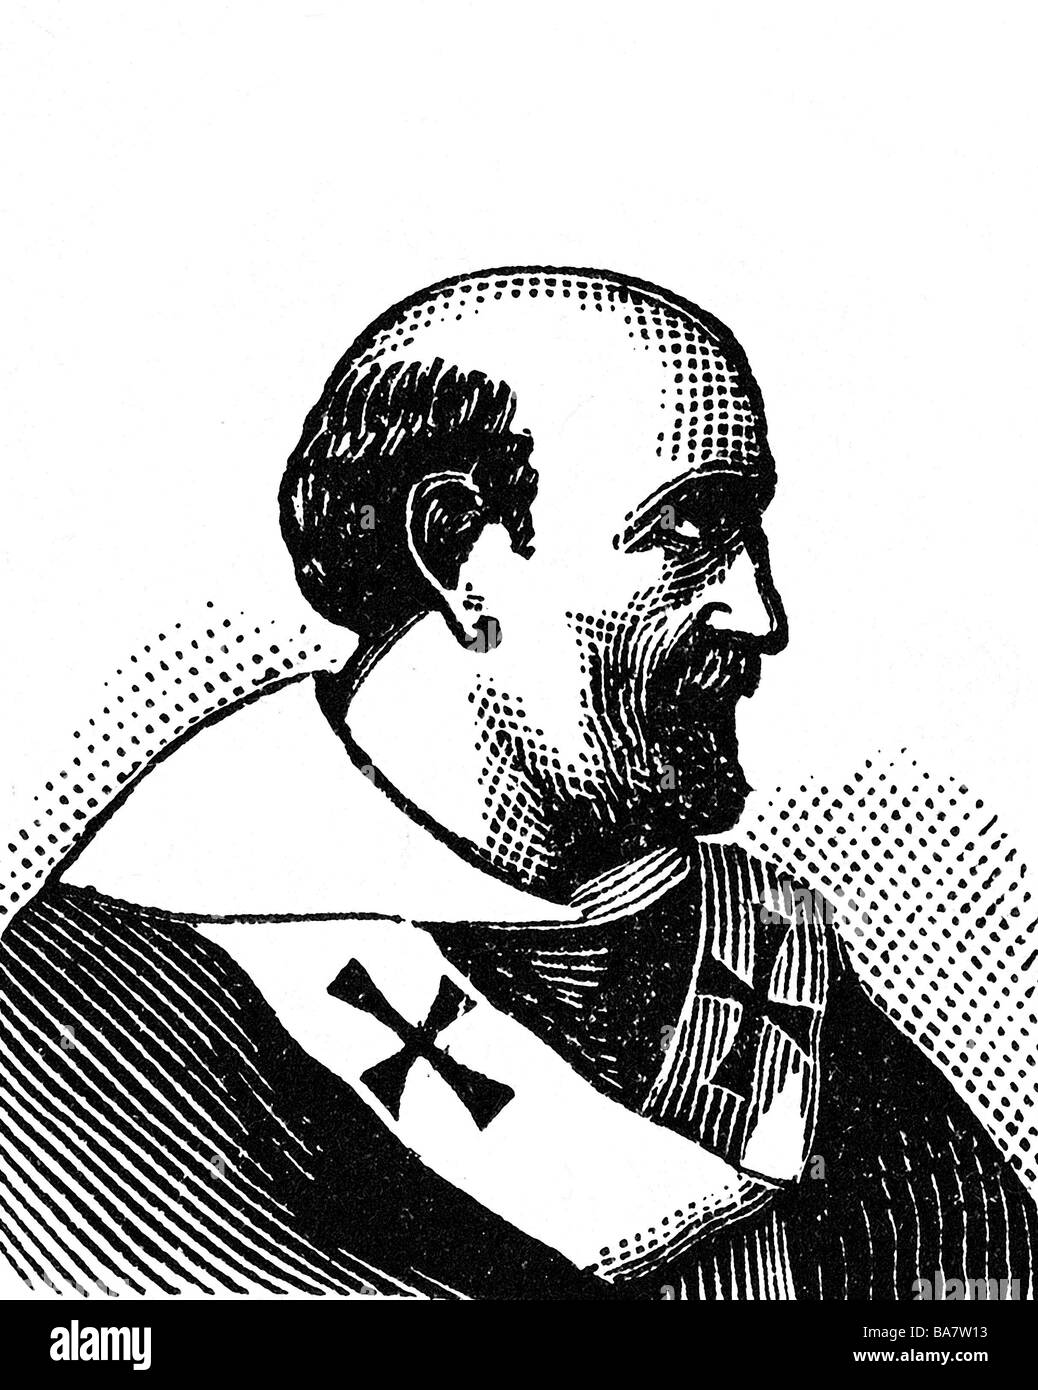 Pope Adrian IV, circa 1115 - 1.9.1159, pope from 1154 - 1.9.1159, portrait, history painting, wood engraving, circa - Stock Image